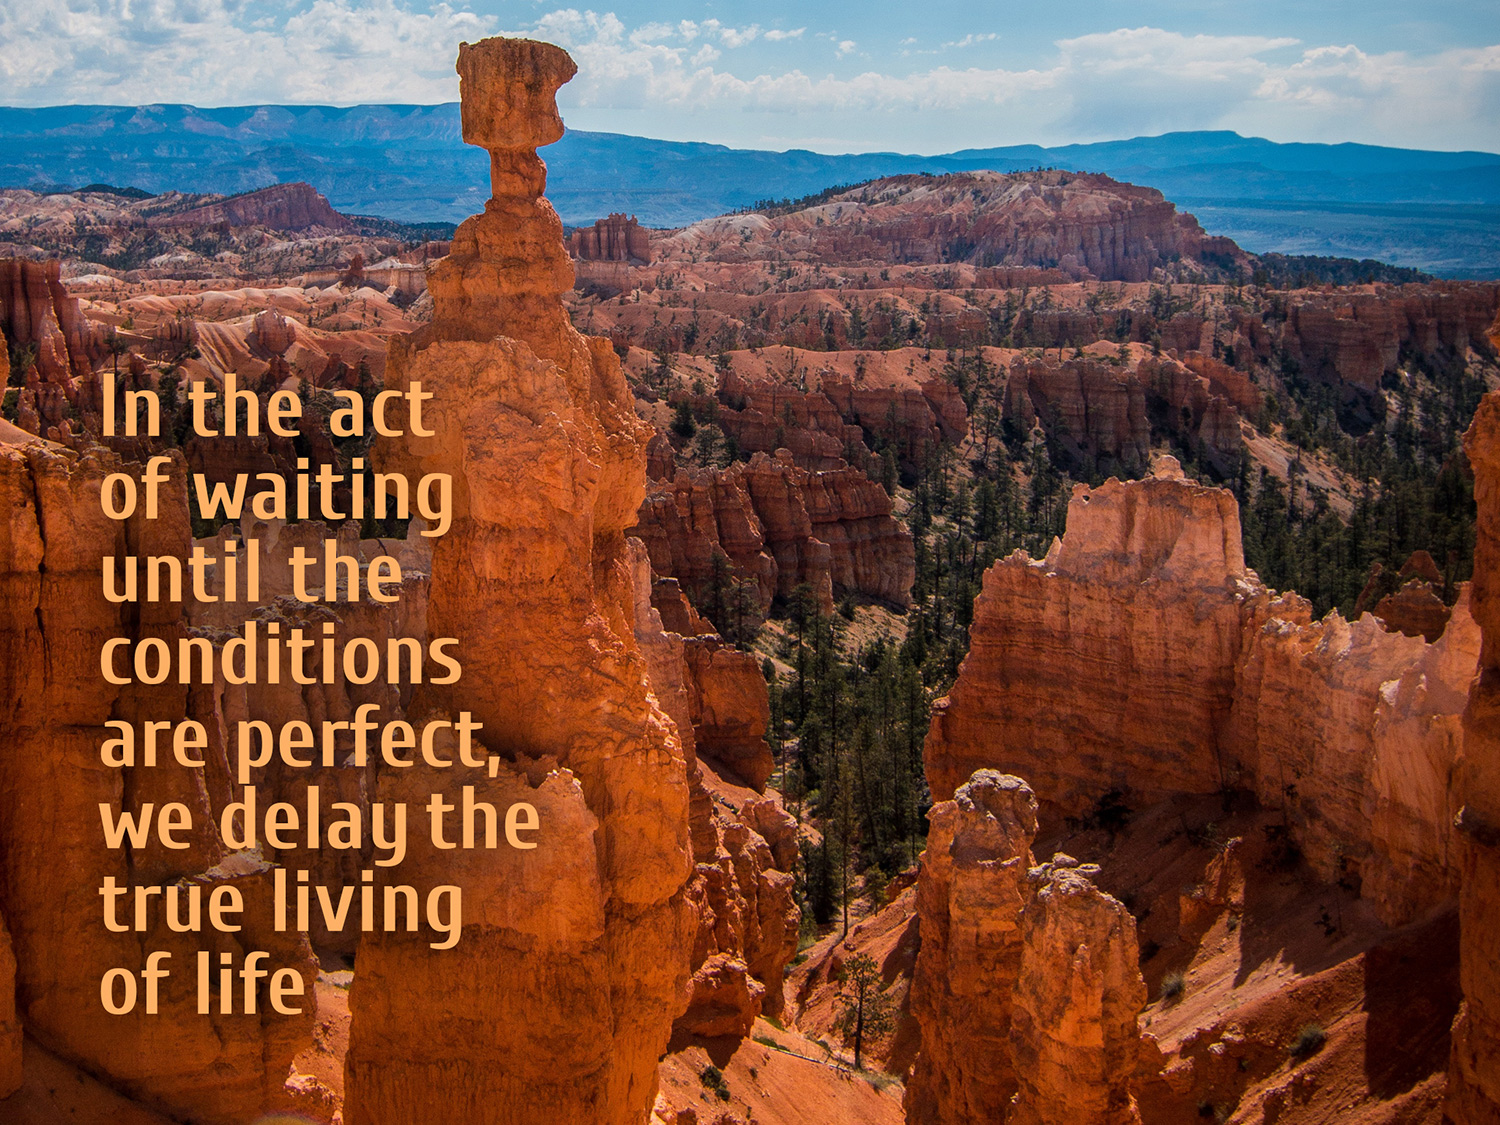 daily inspirational quote image: aerial view of Bryce canyon on a bright sunny day